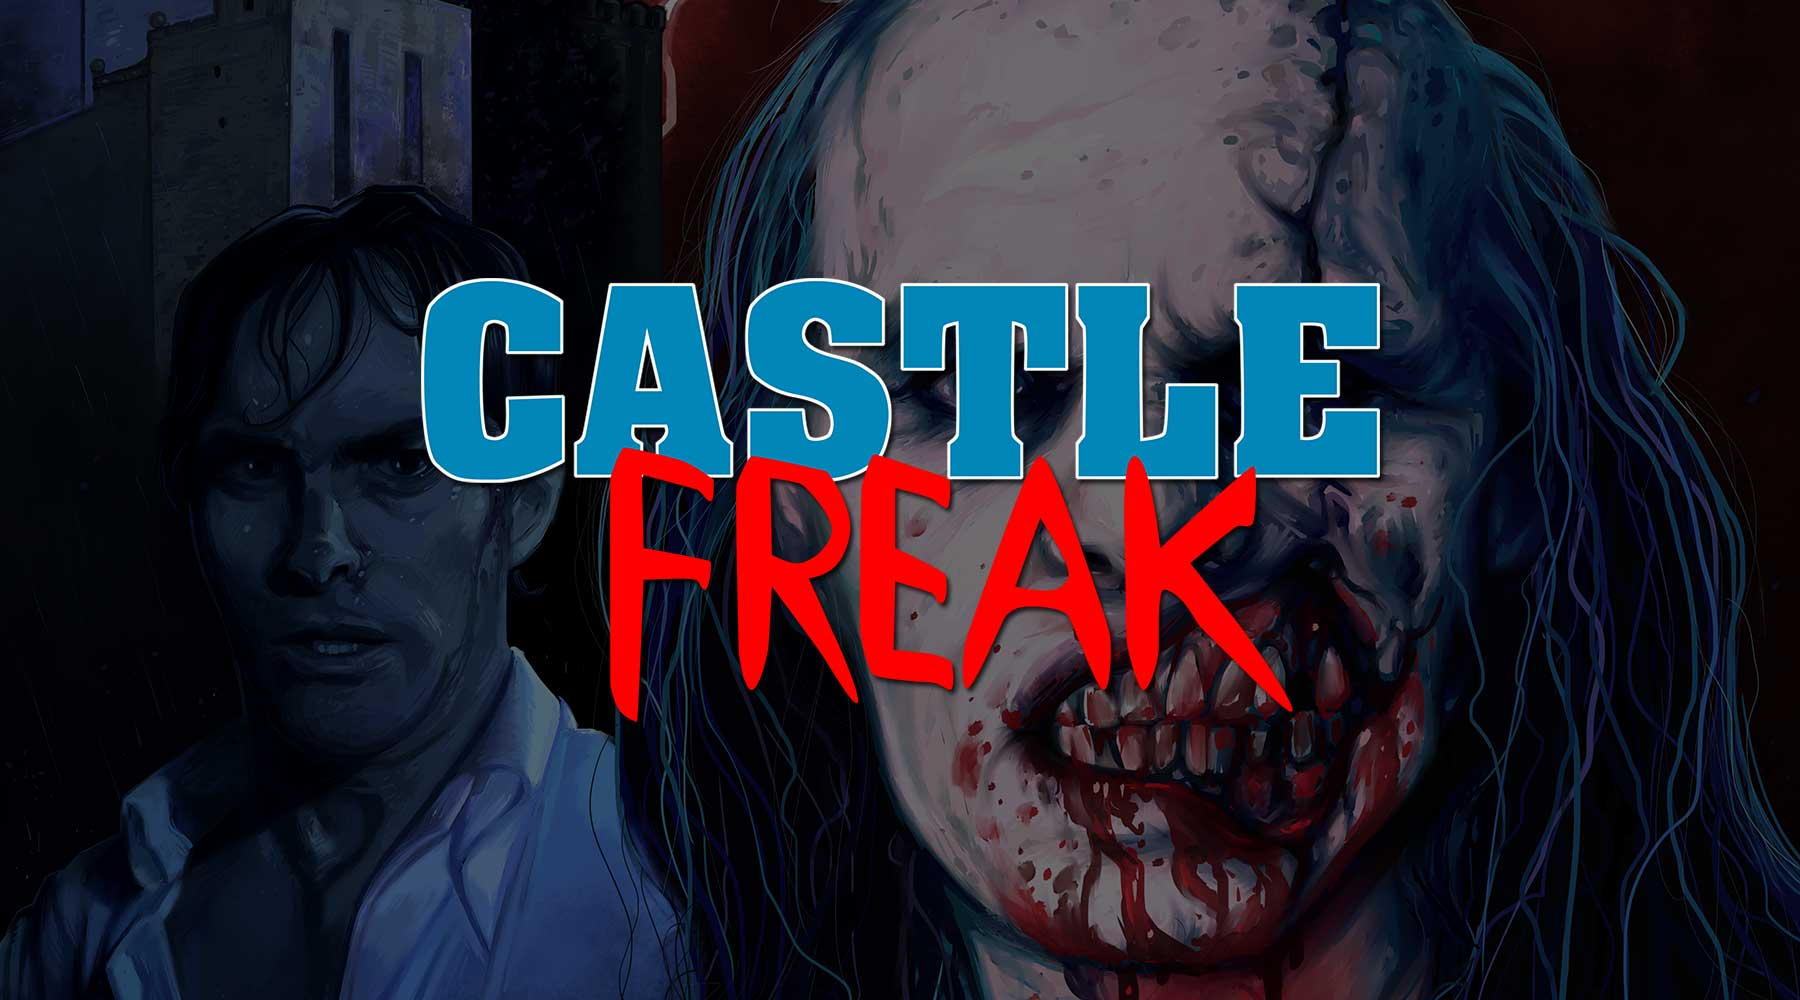 Officially Licensed CASTLE FREAK Enamel Pins, T-Shirts & Art Prints Now Available